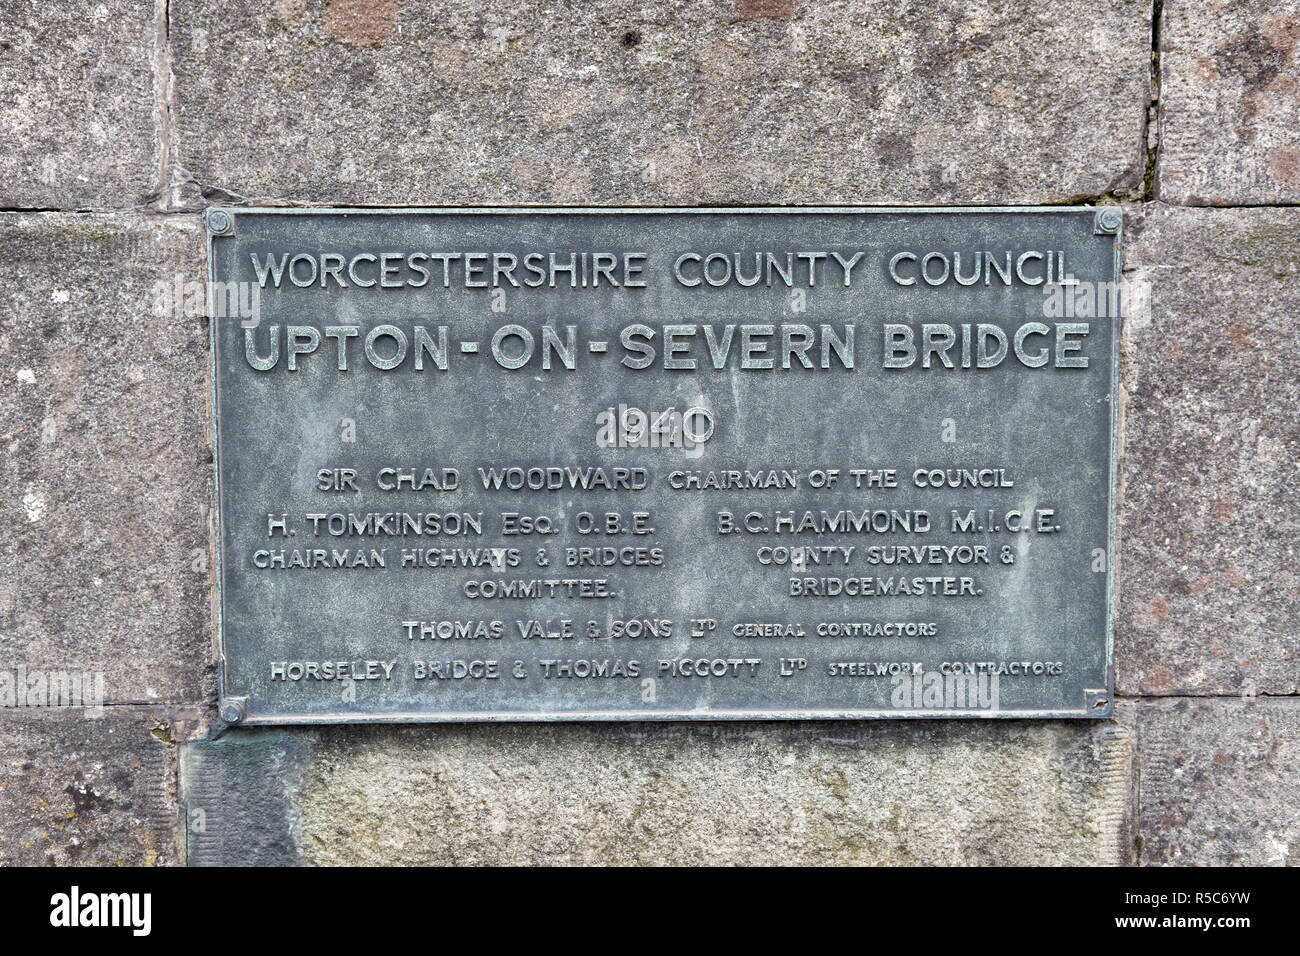 Plaque on the Upton-Upon-Severn bridge, also known as Upton-On-Severn, taken in Upton-Upon-Severn, Worcestershire, UK - Stock Image